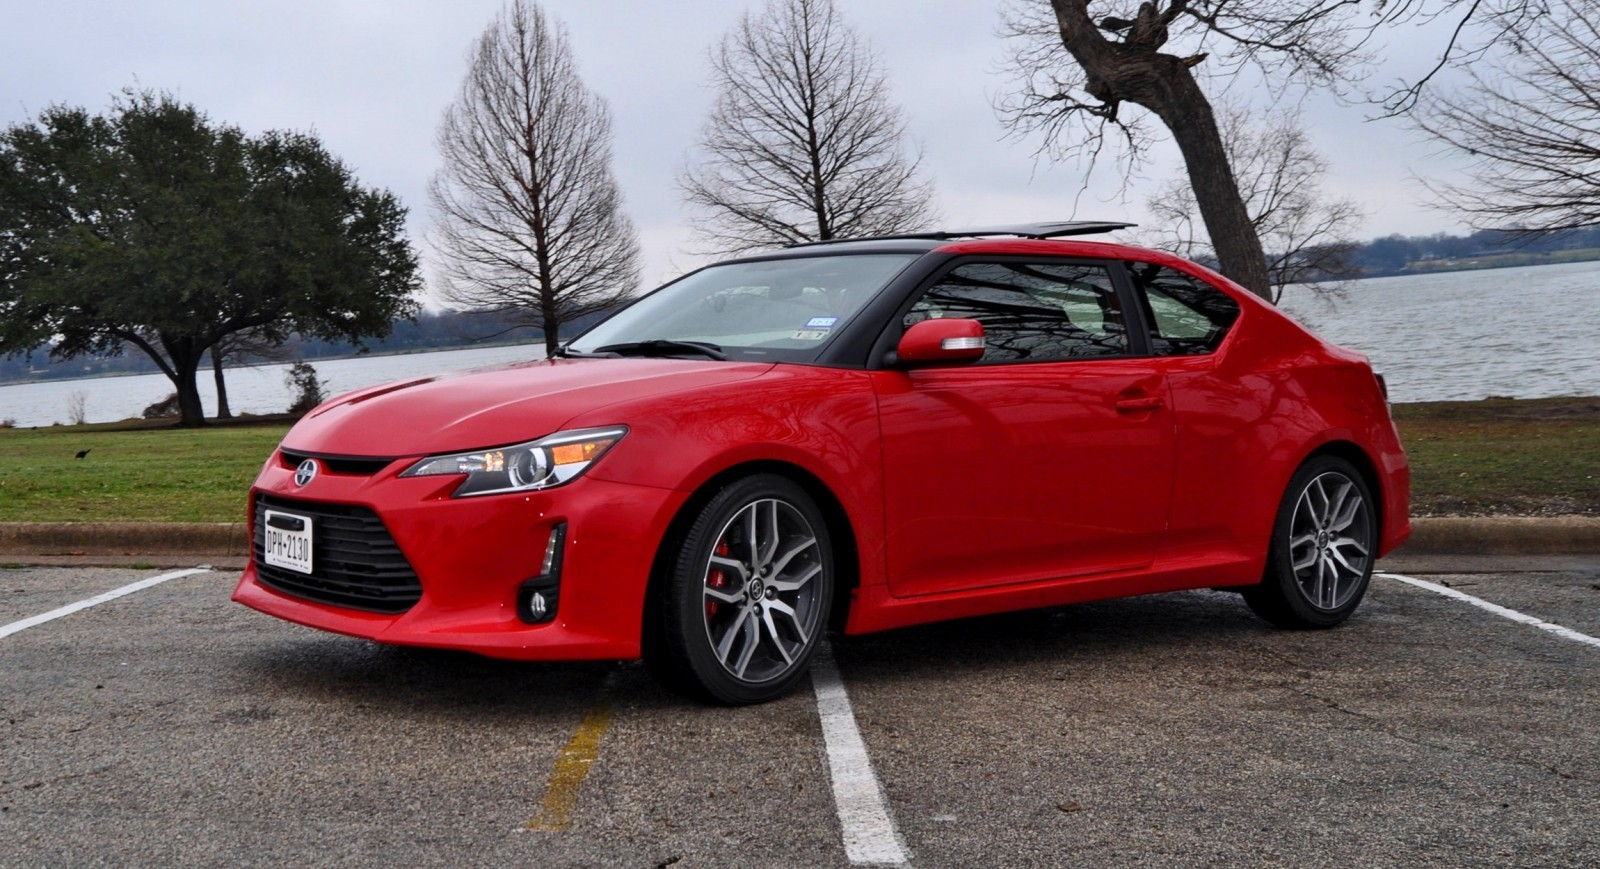 Road Test Review - 2015 Scion tC 6-Speed With TRD Performance Parts 74